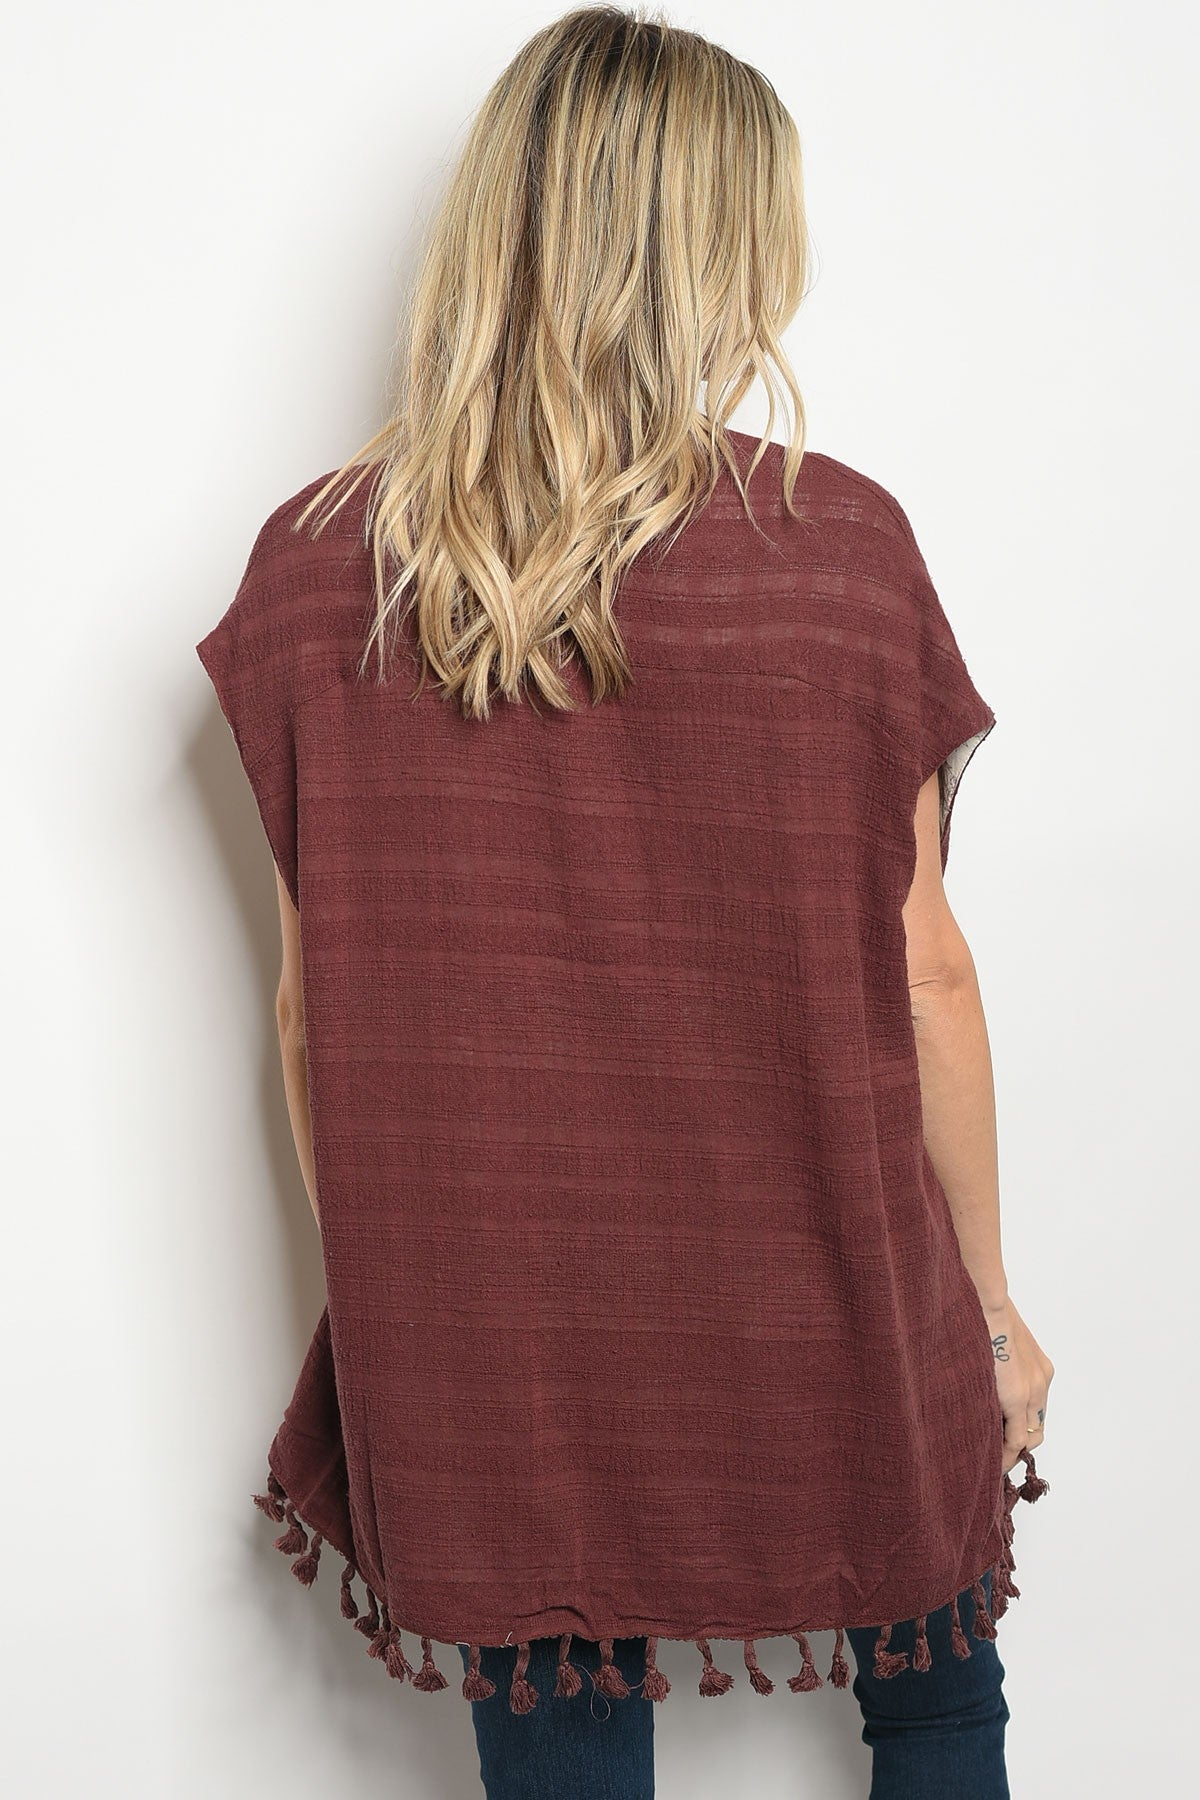 Margot Burgundy Cardigan